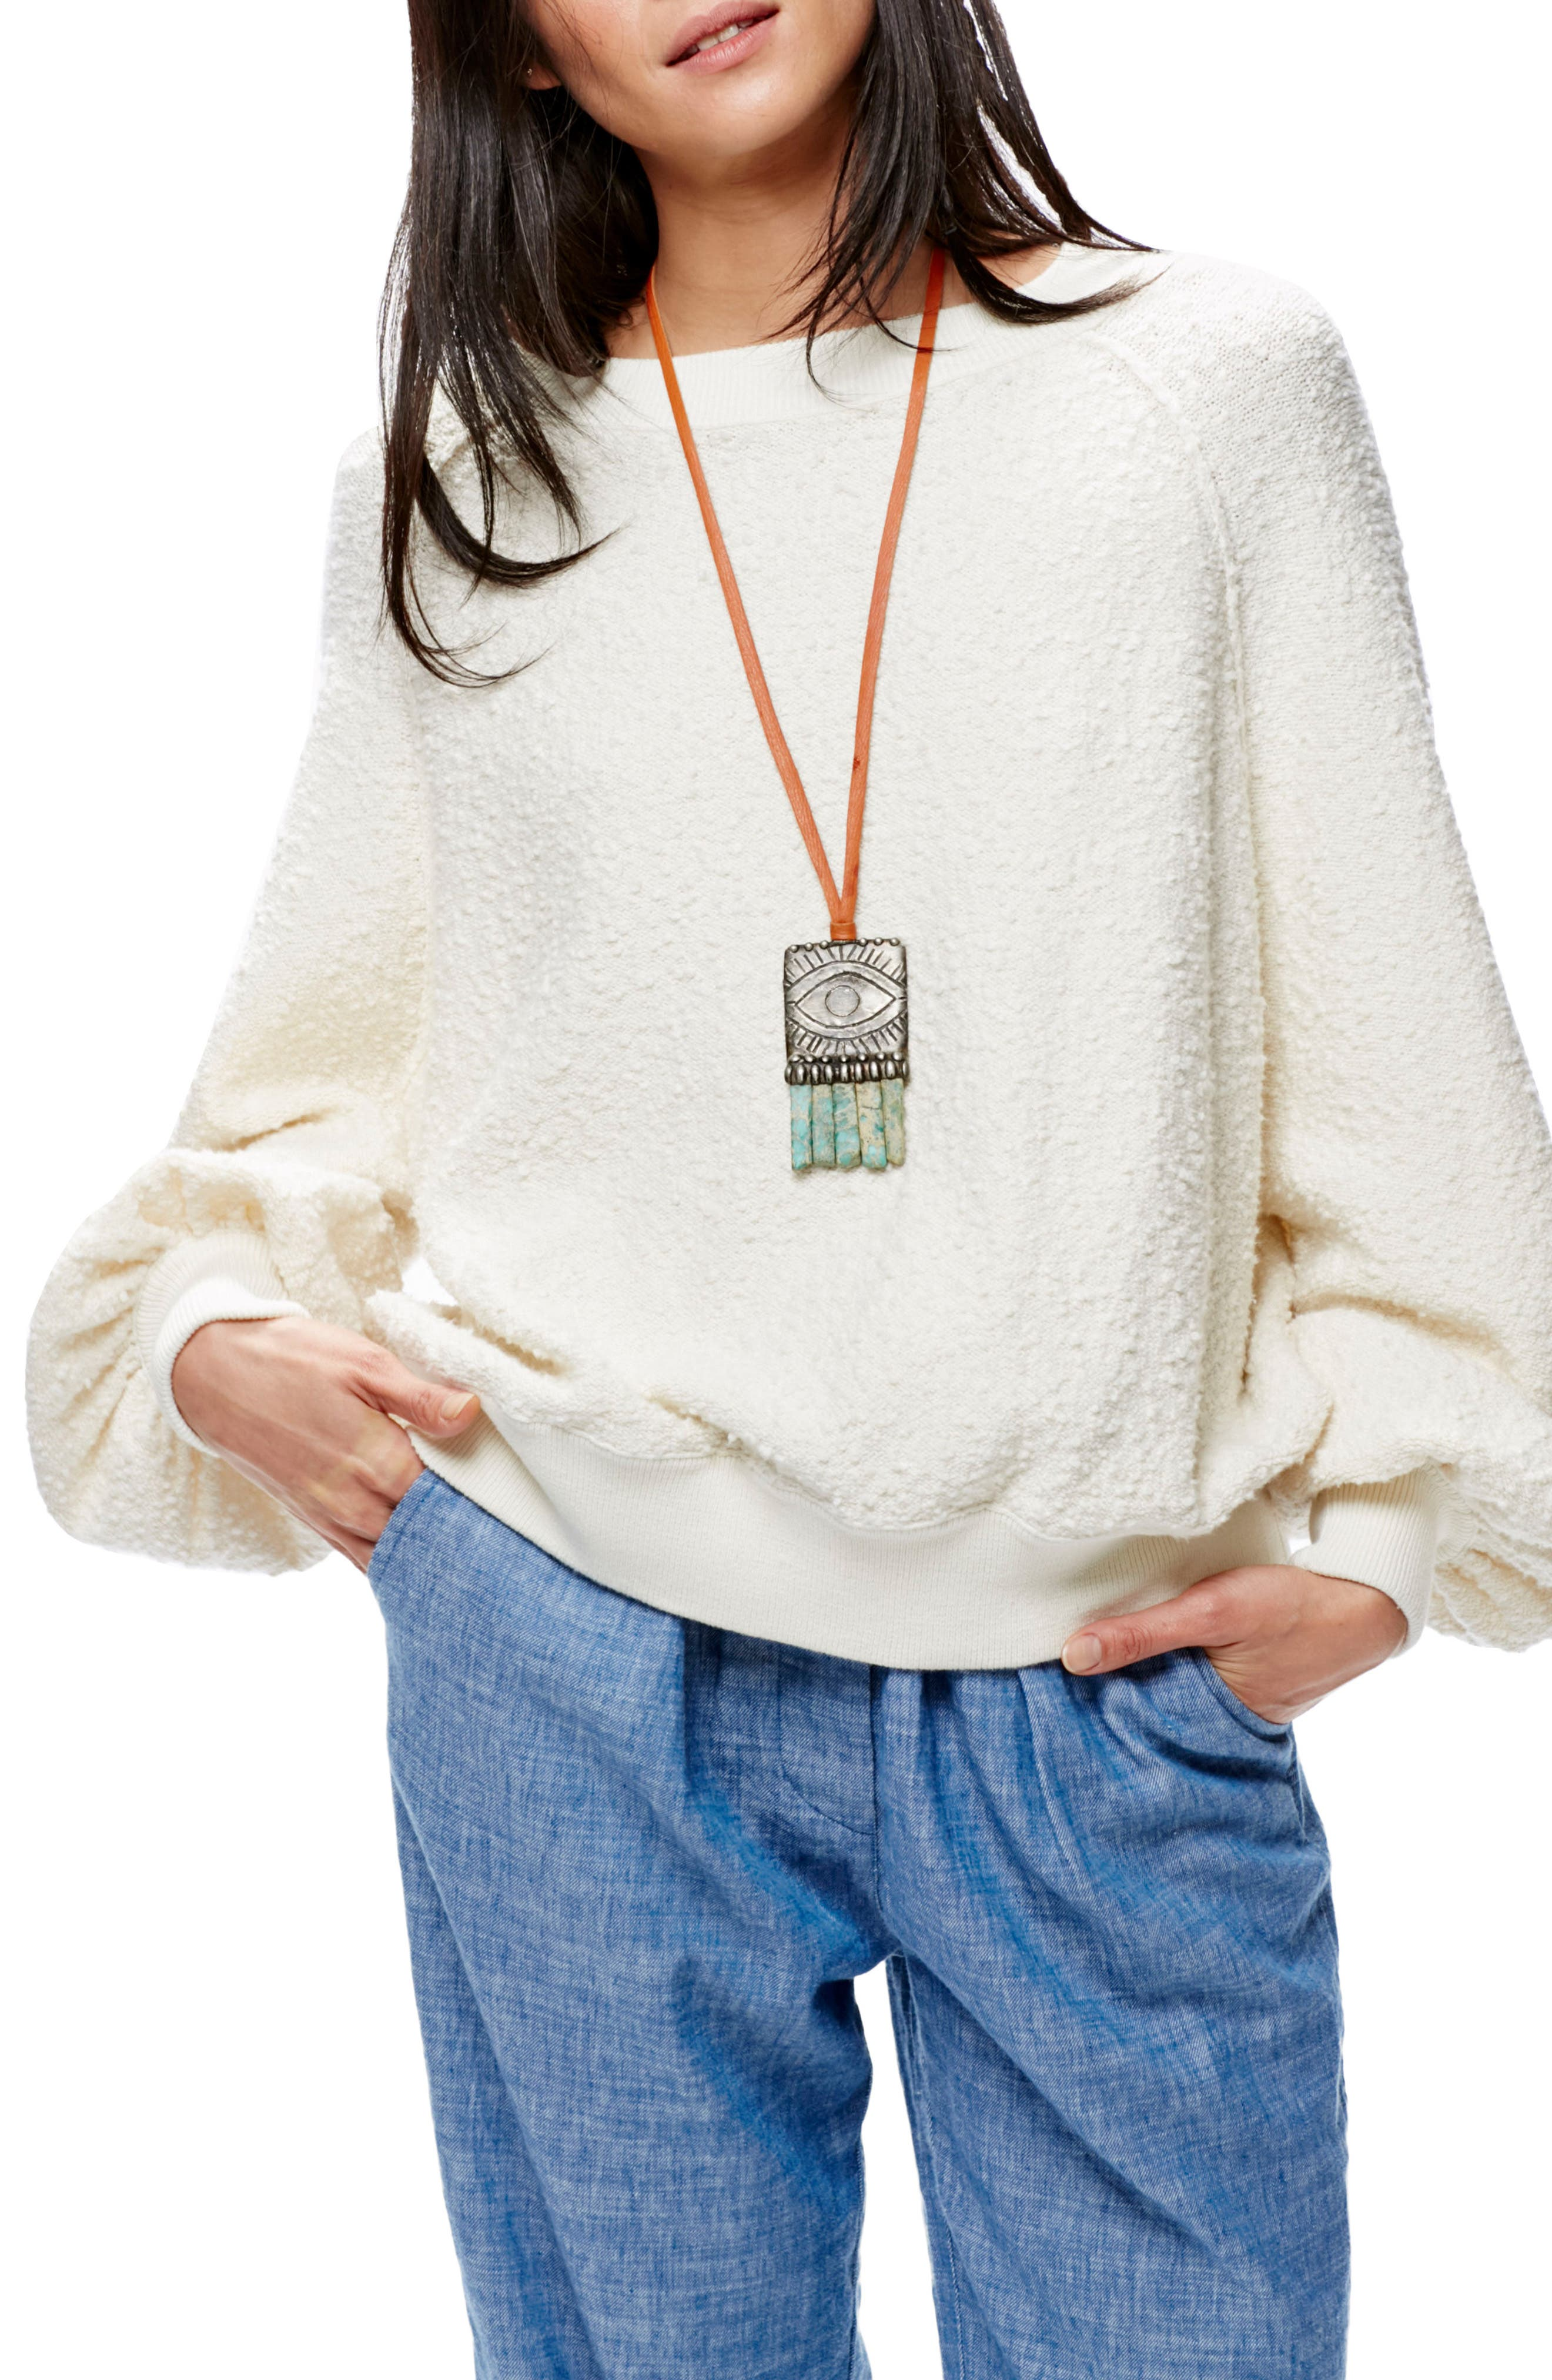 Found My Friend Sweatshirt,                             Main thumbnail 1, color,                             Ivory